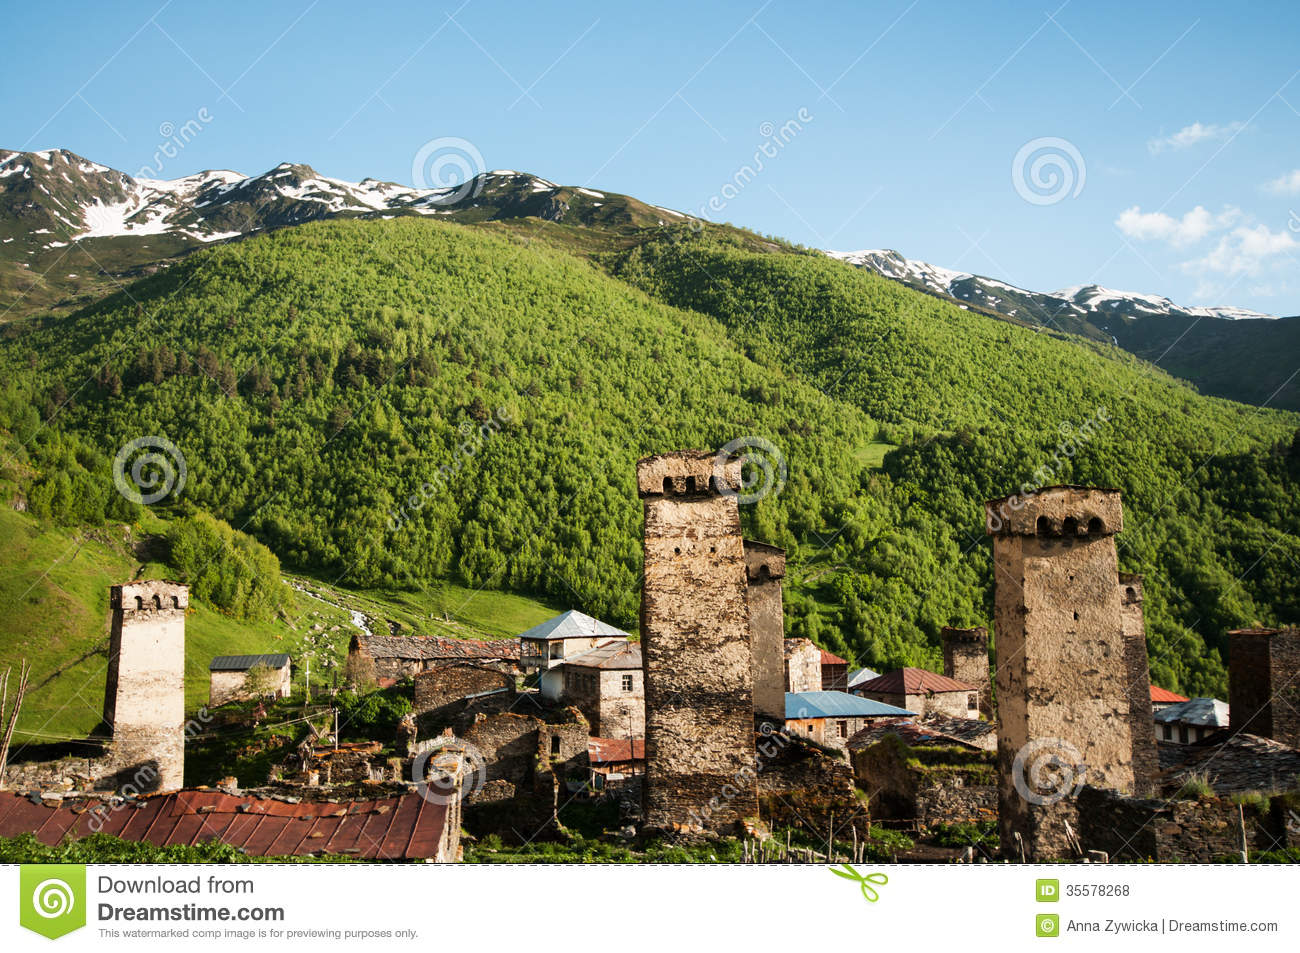 Historical towers and huts in mountain village.